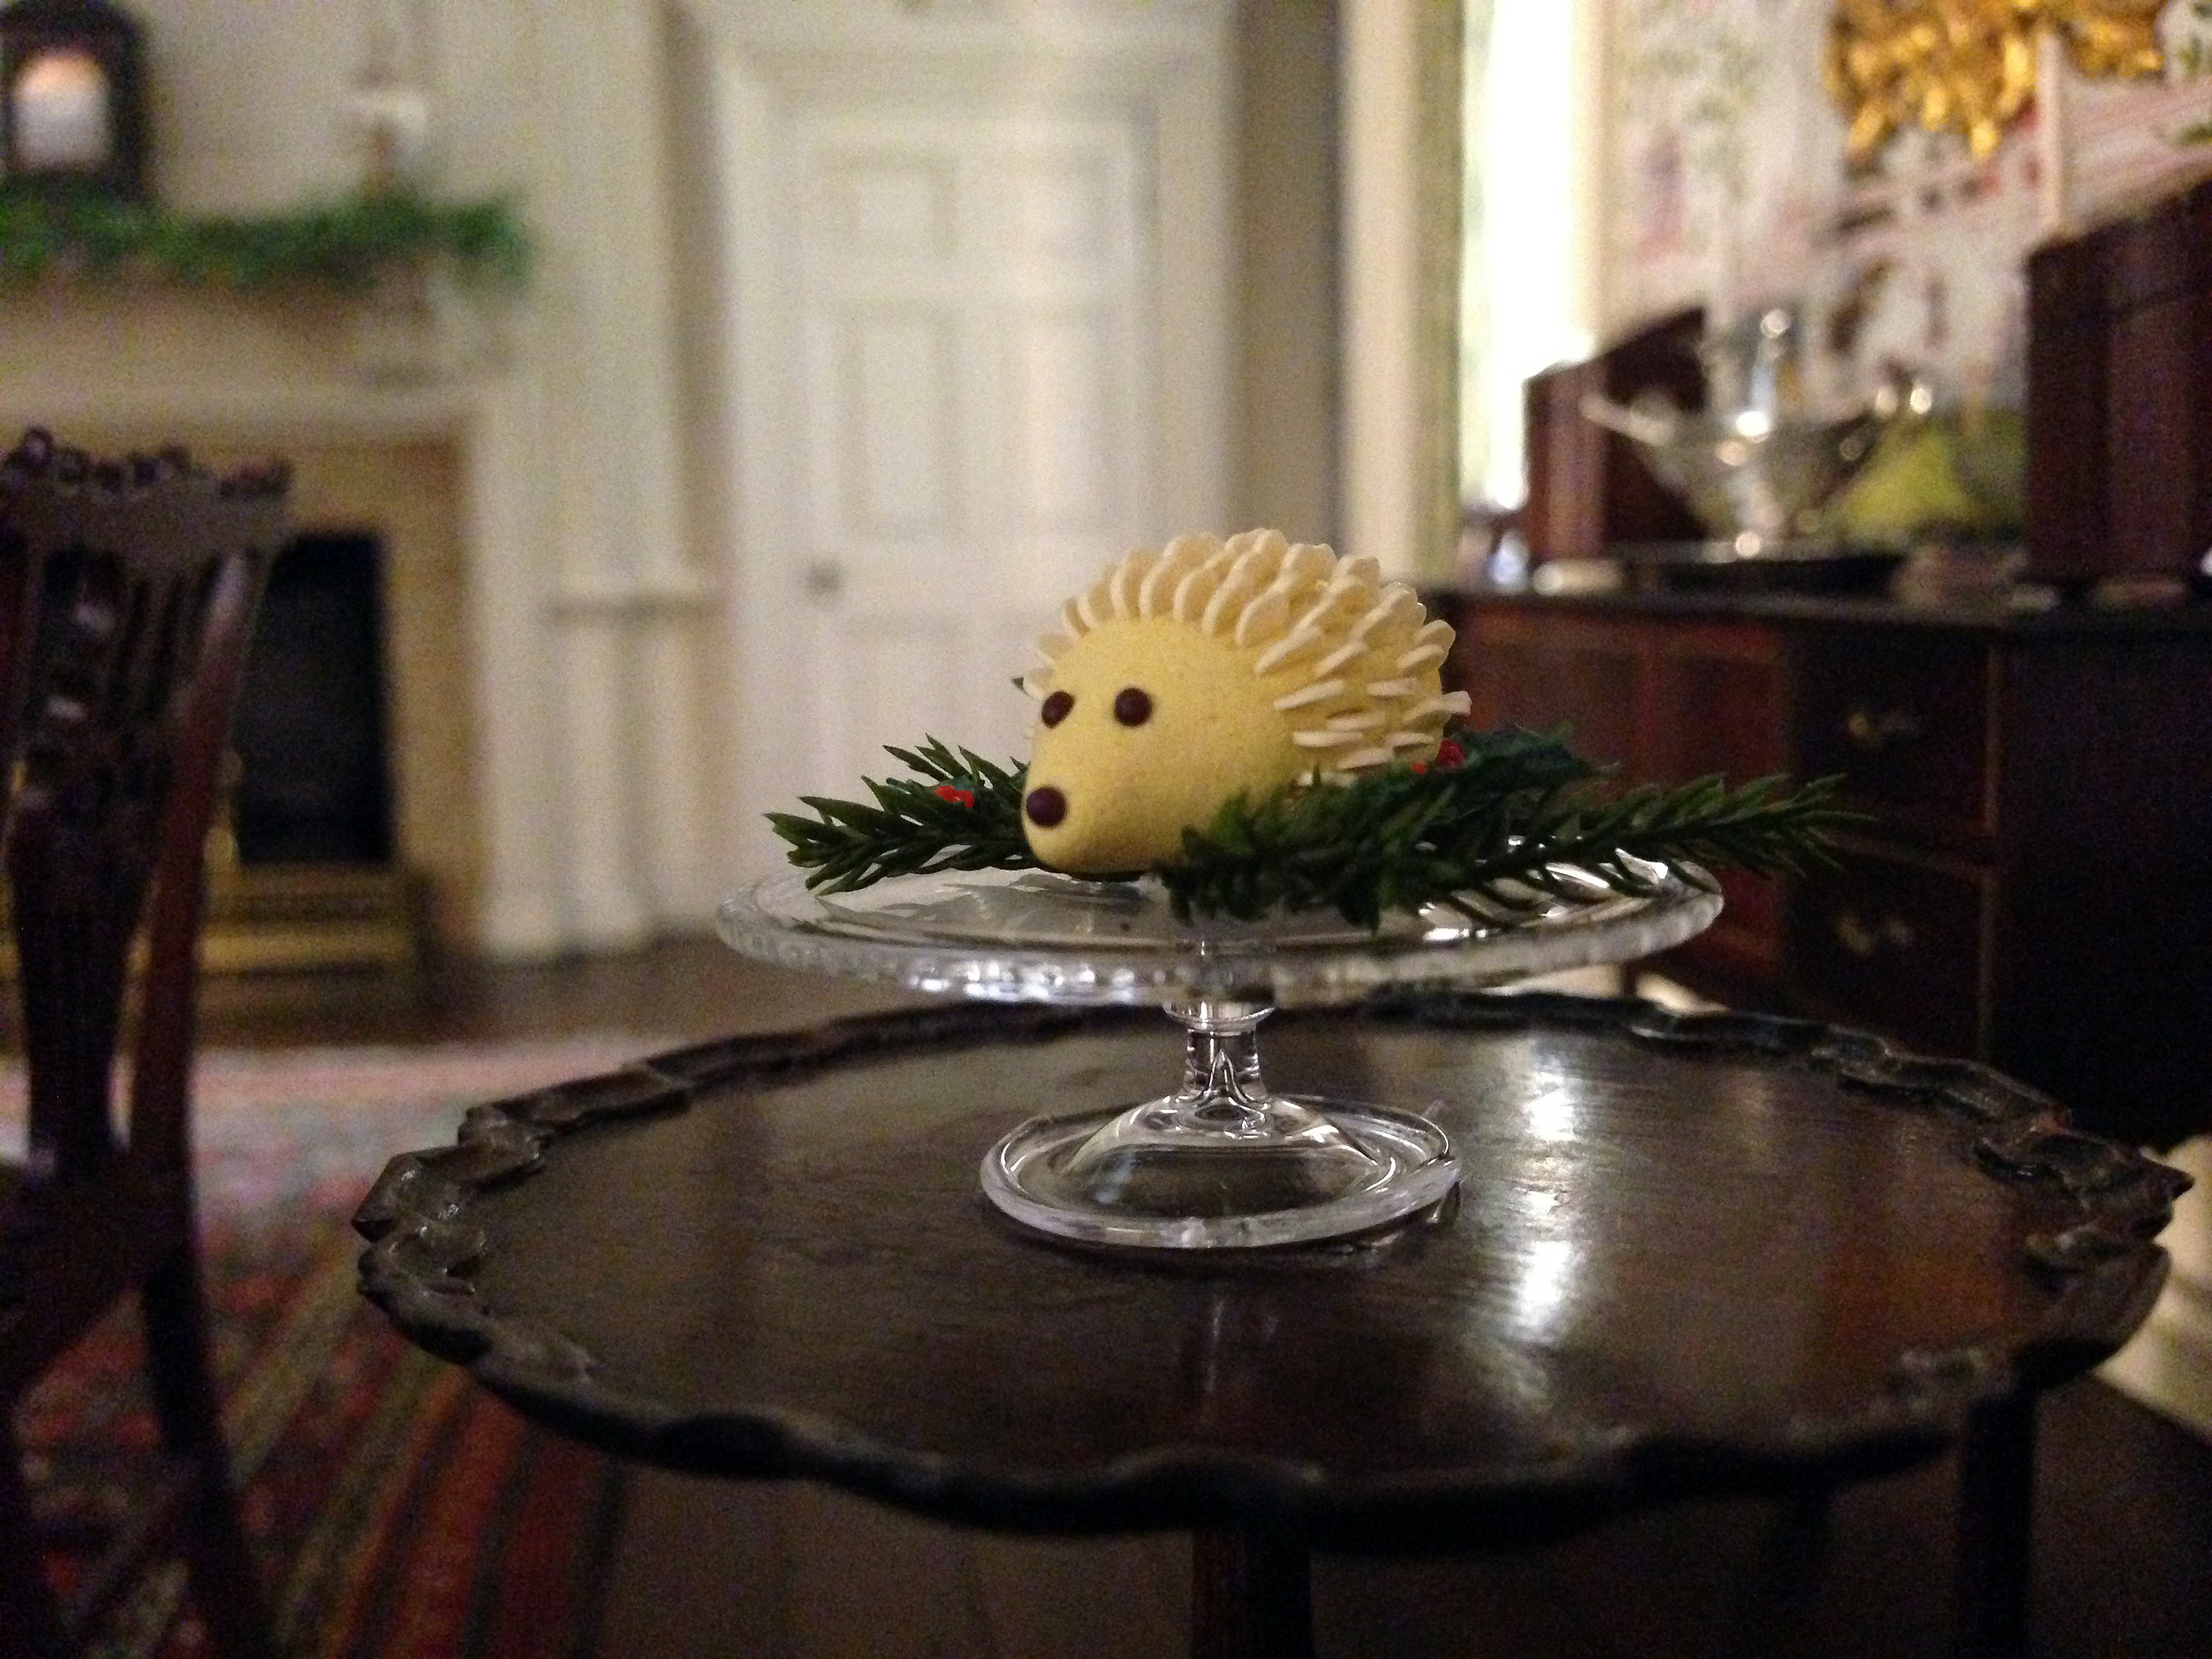 A photo of a tiny marzipan cake in the shape of a hedgehog on a glass platter on top of a round wooden table.